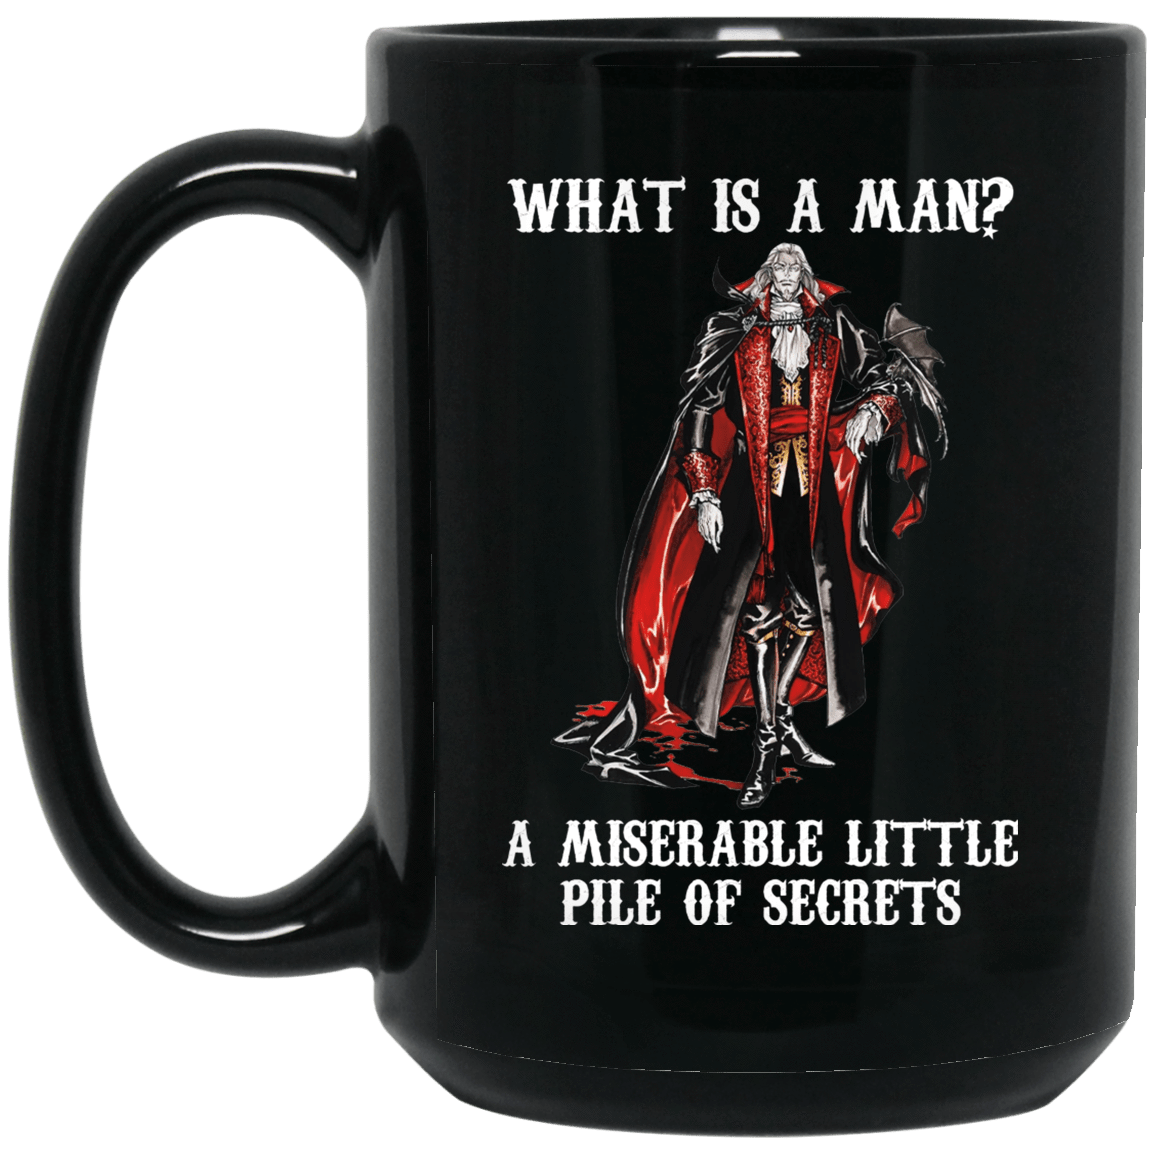 What Is A Man A Miserable Little Pile Of Secrets Mug 1066-10182-73514463-49311 - Tee Ript